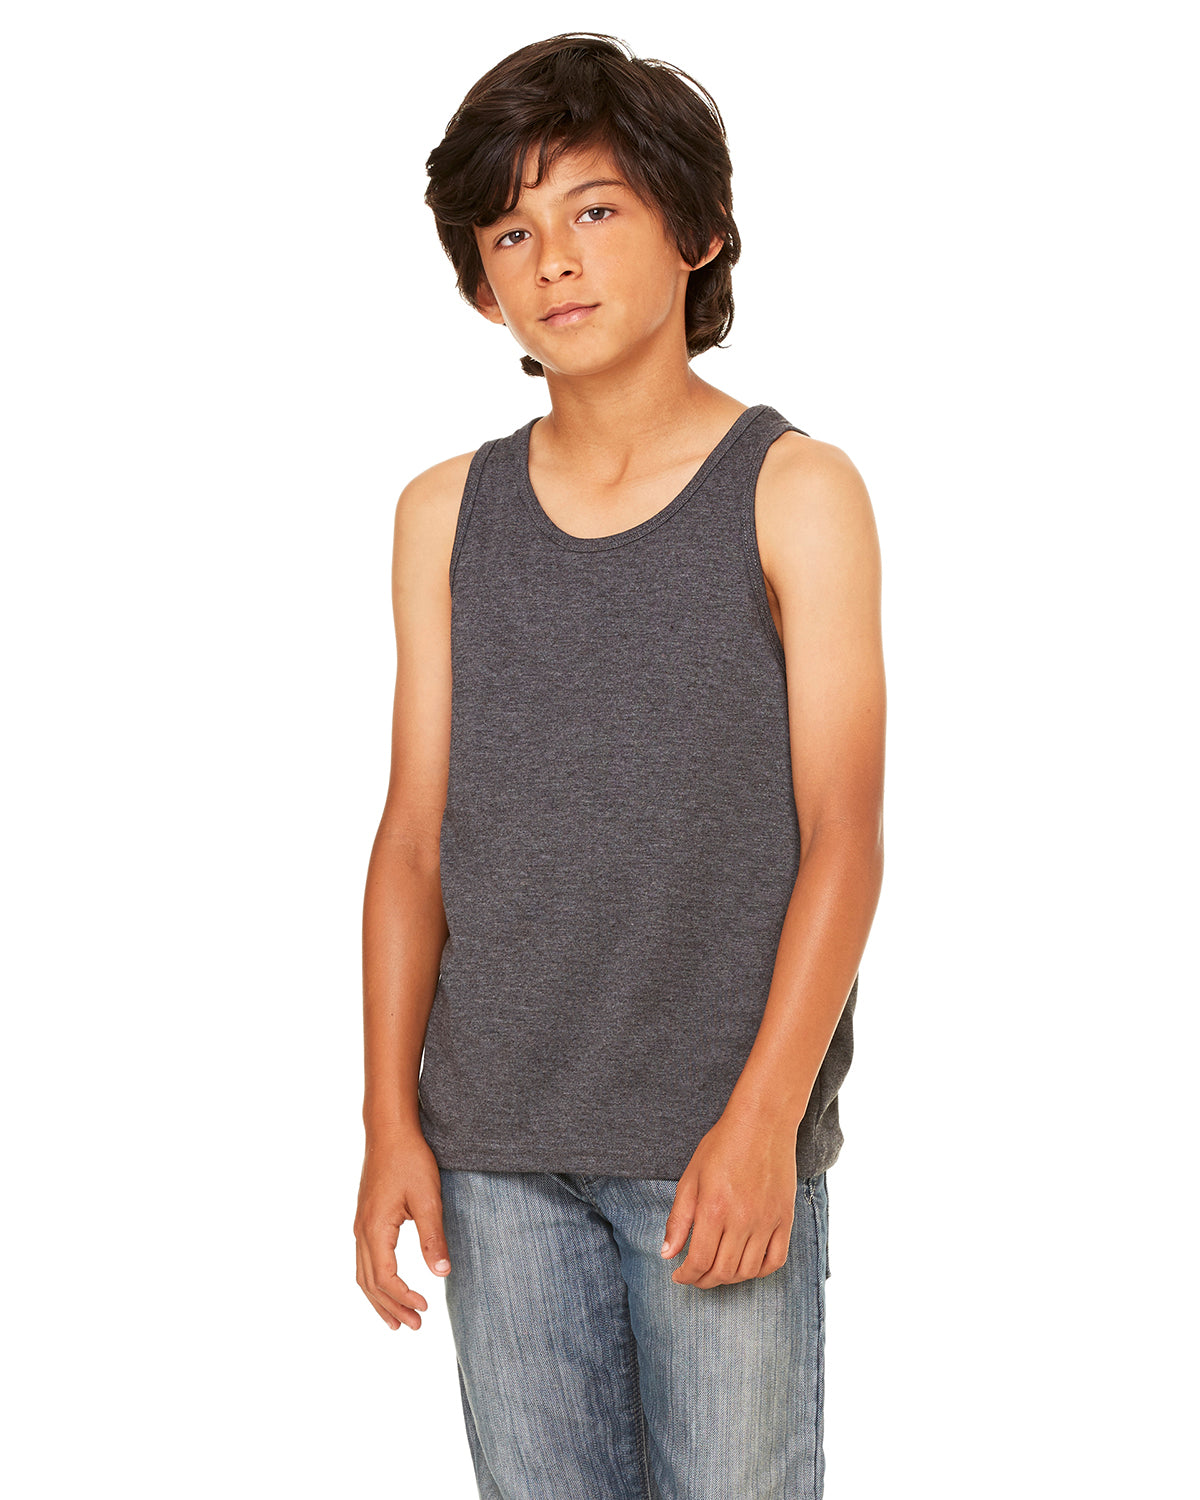 BellaCanvas Youth Jersey Tank